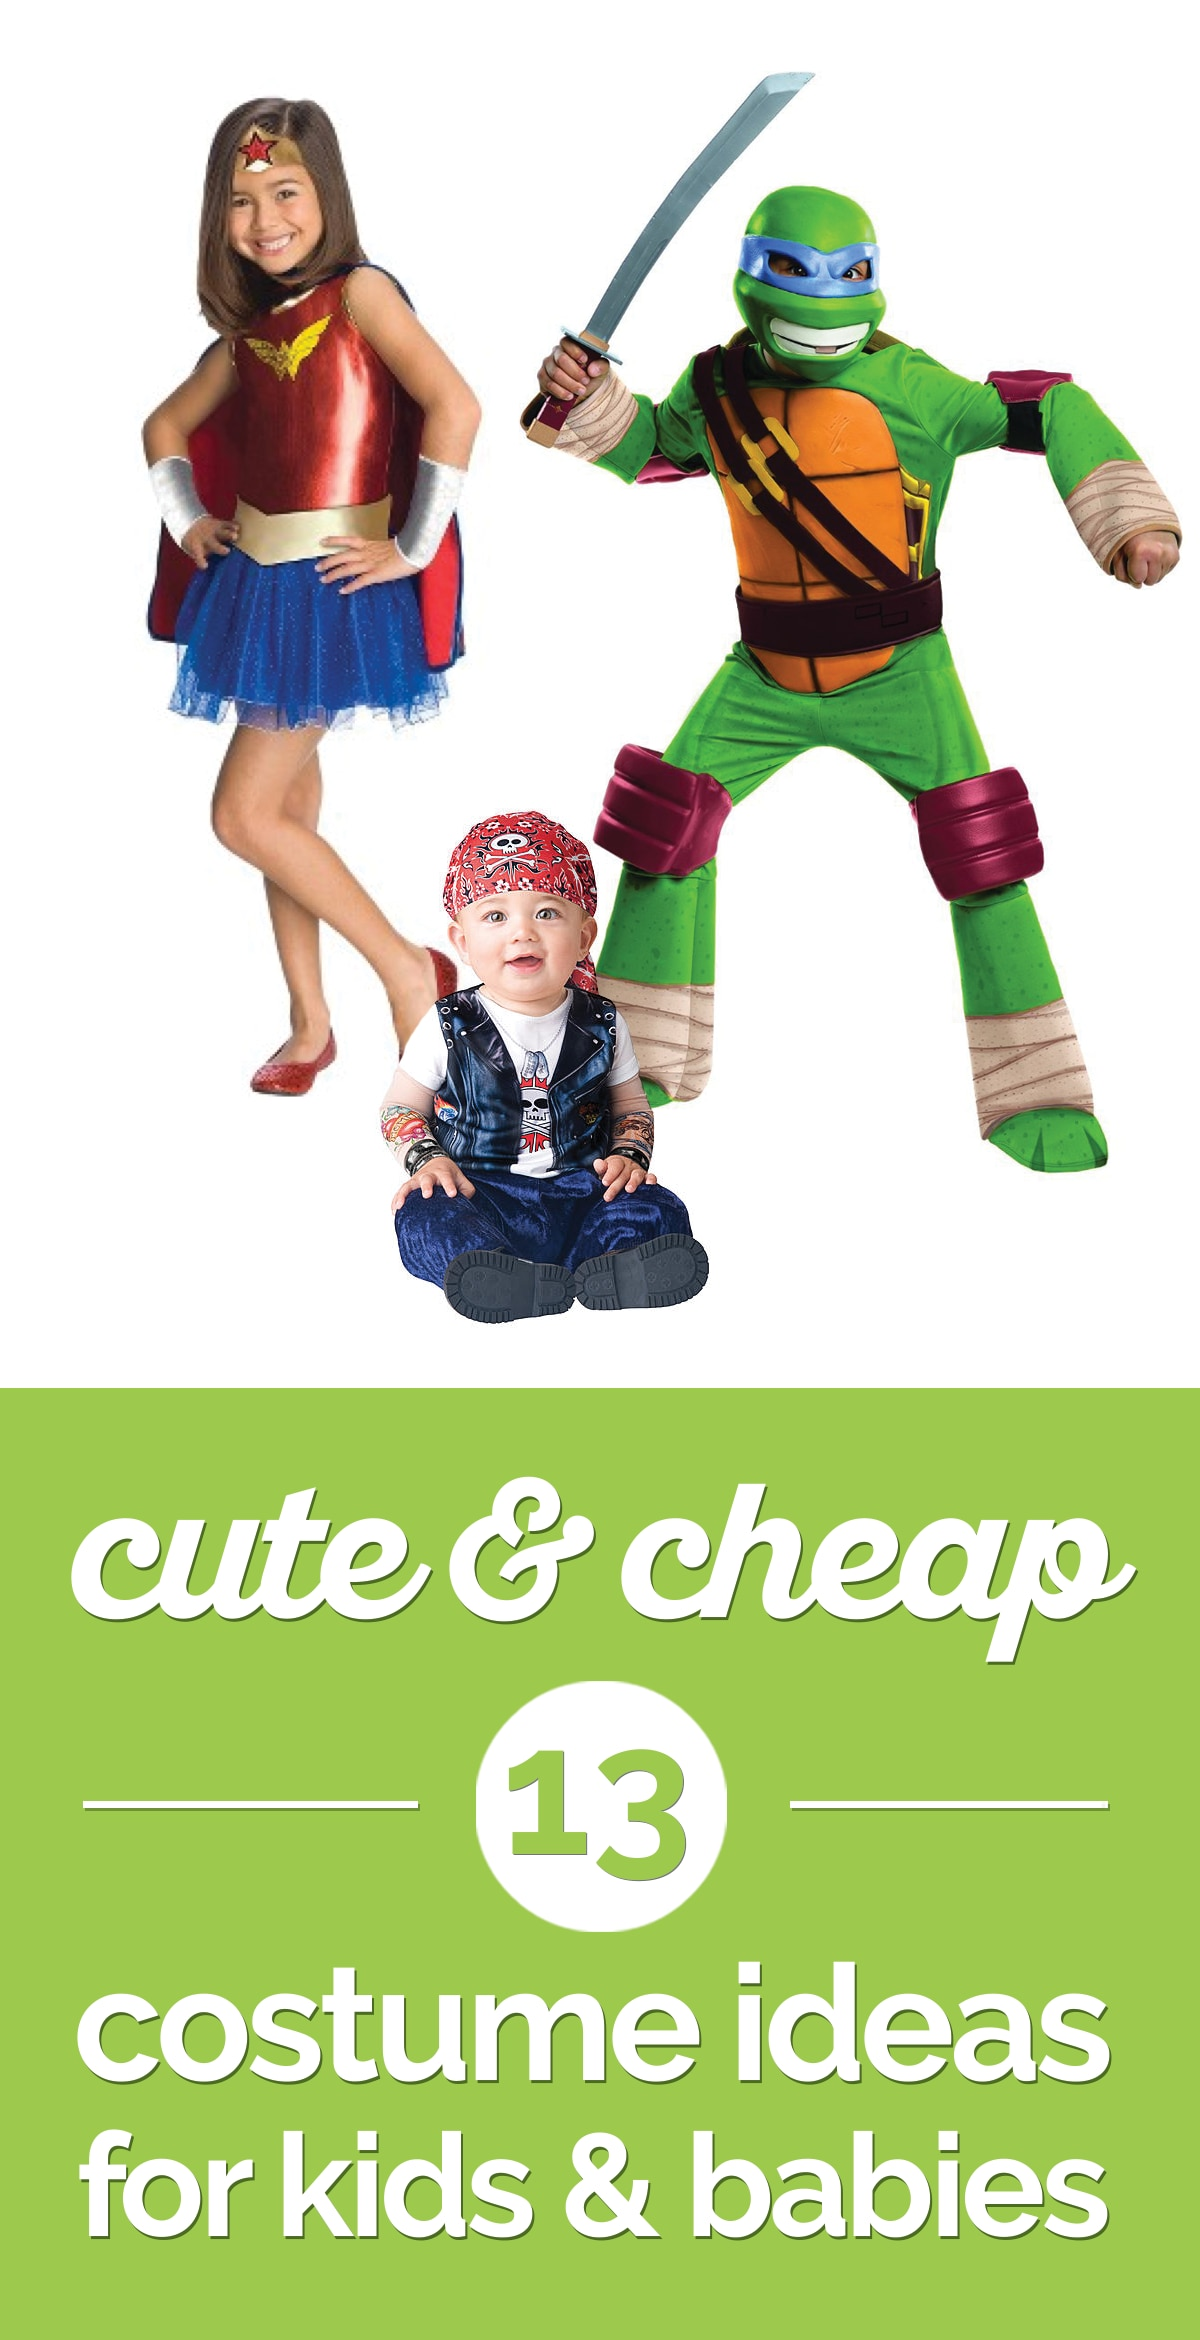 13 Cute & Cheap Costume Ideas for Kids & Babies | the good stuff